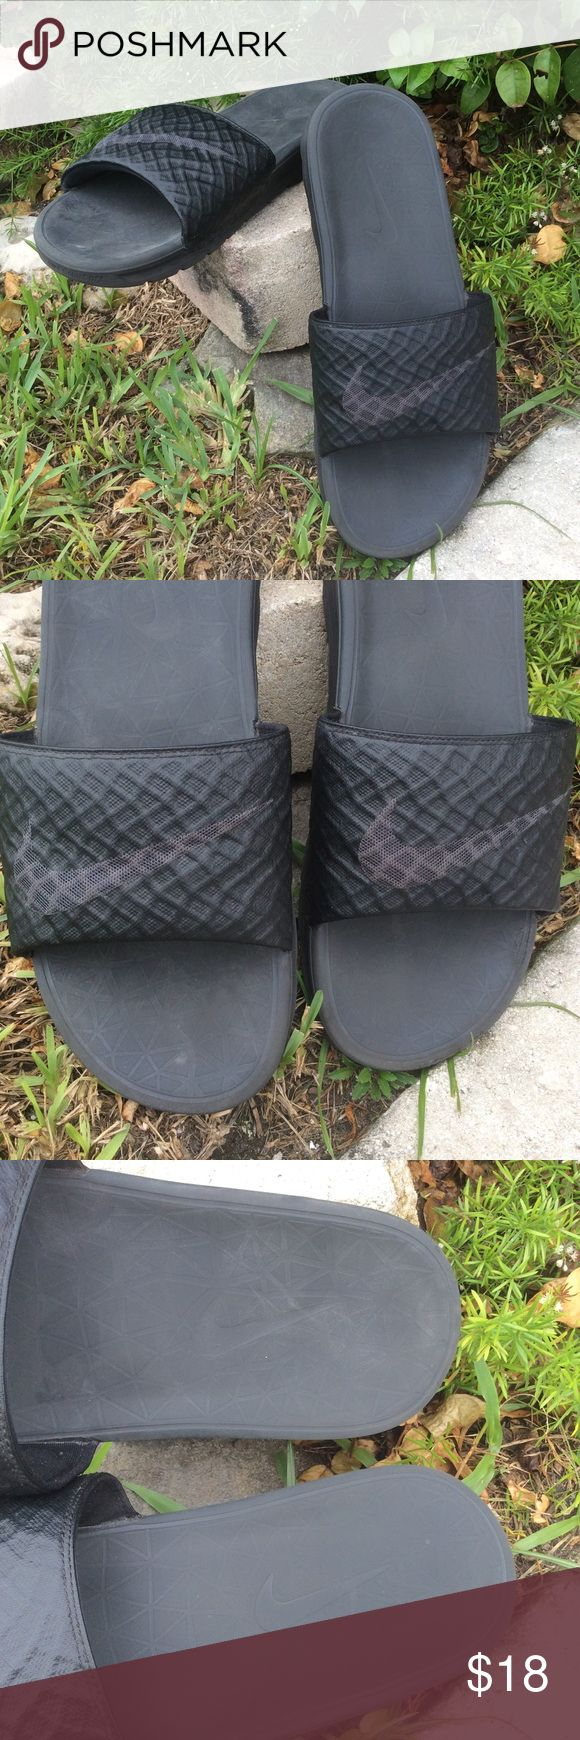 Nike Black Gray Sandals Slides Flip Flops Flats Slide on Men's Nike Sandals. Gray Nike Swoosh on top. Cushioned insole. Padded slide top. Men's size 11.5. Nike Shoes